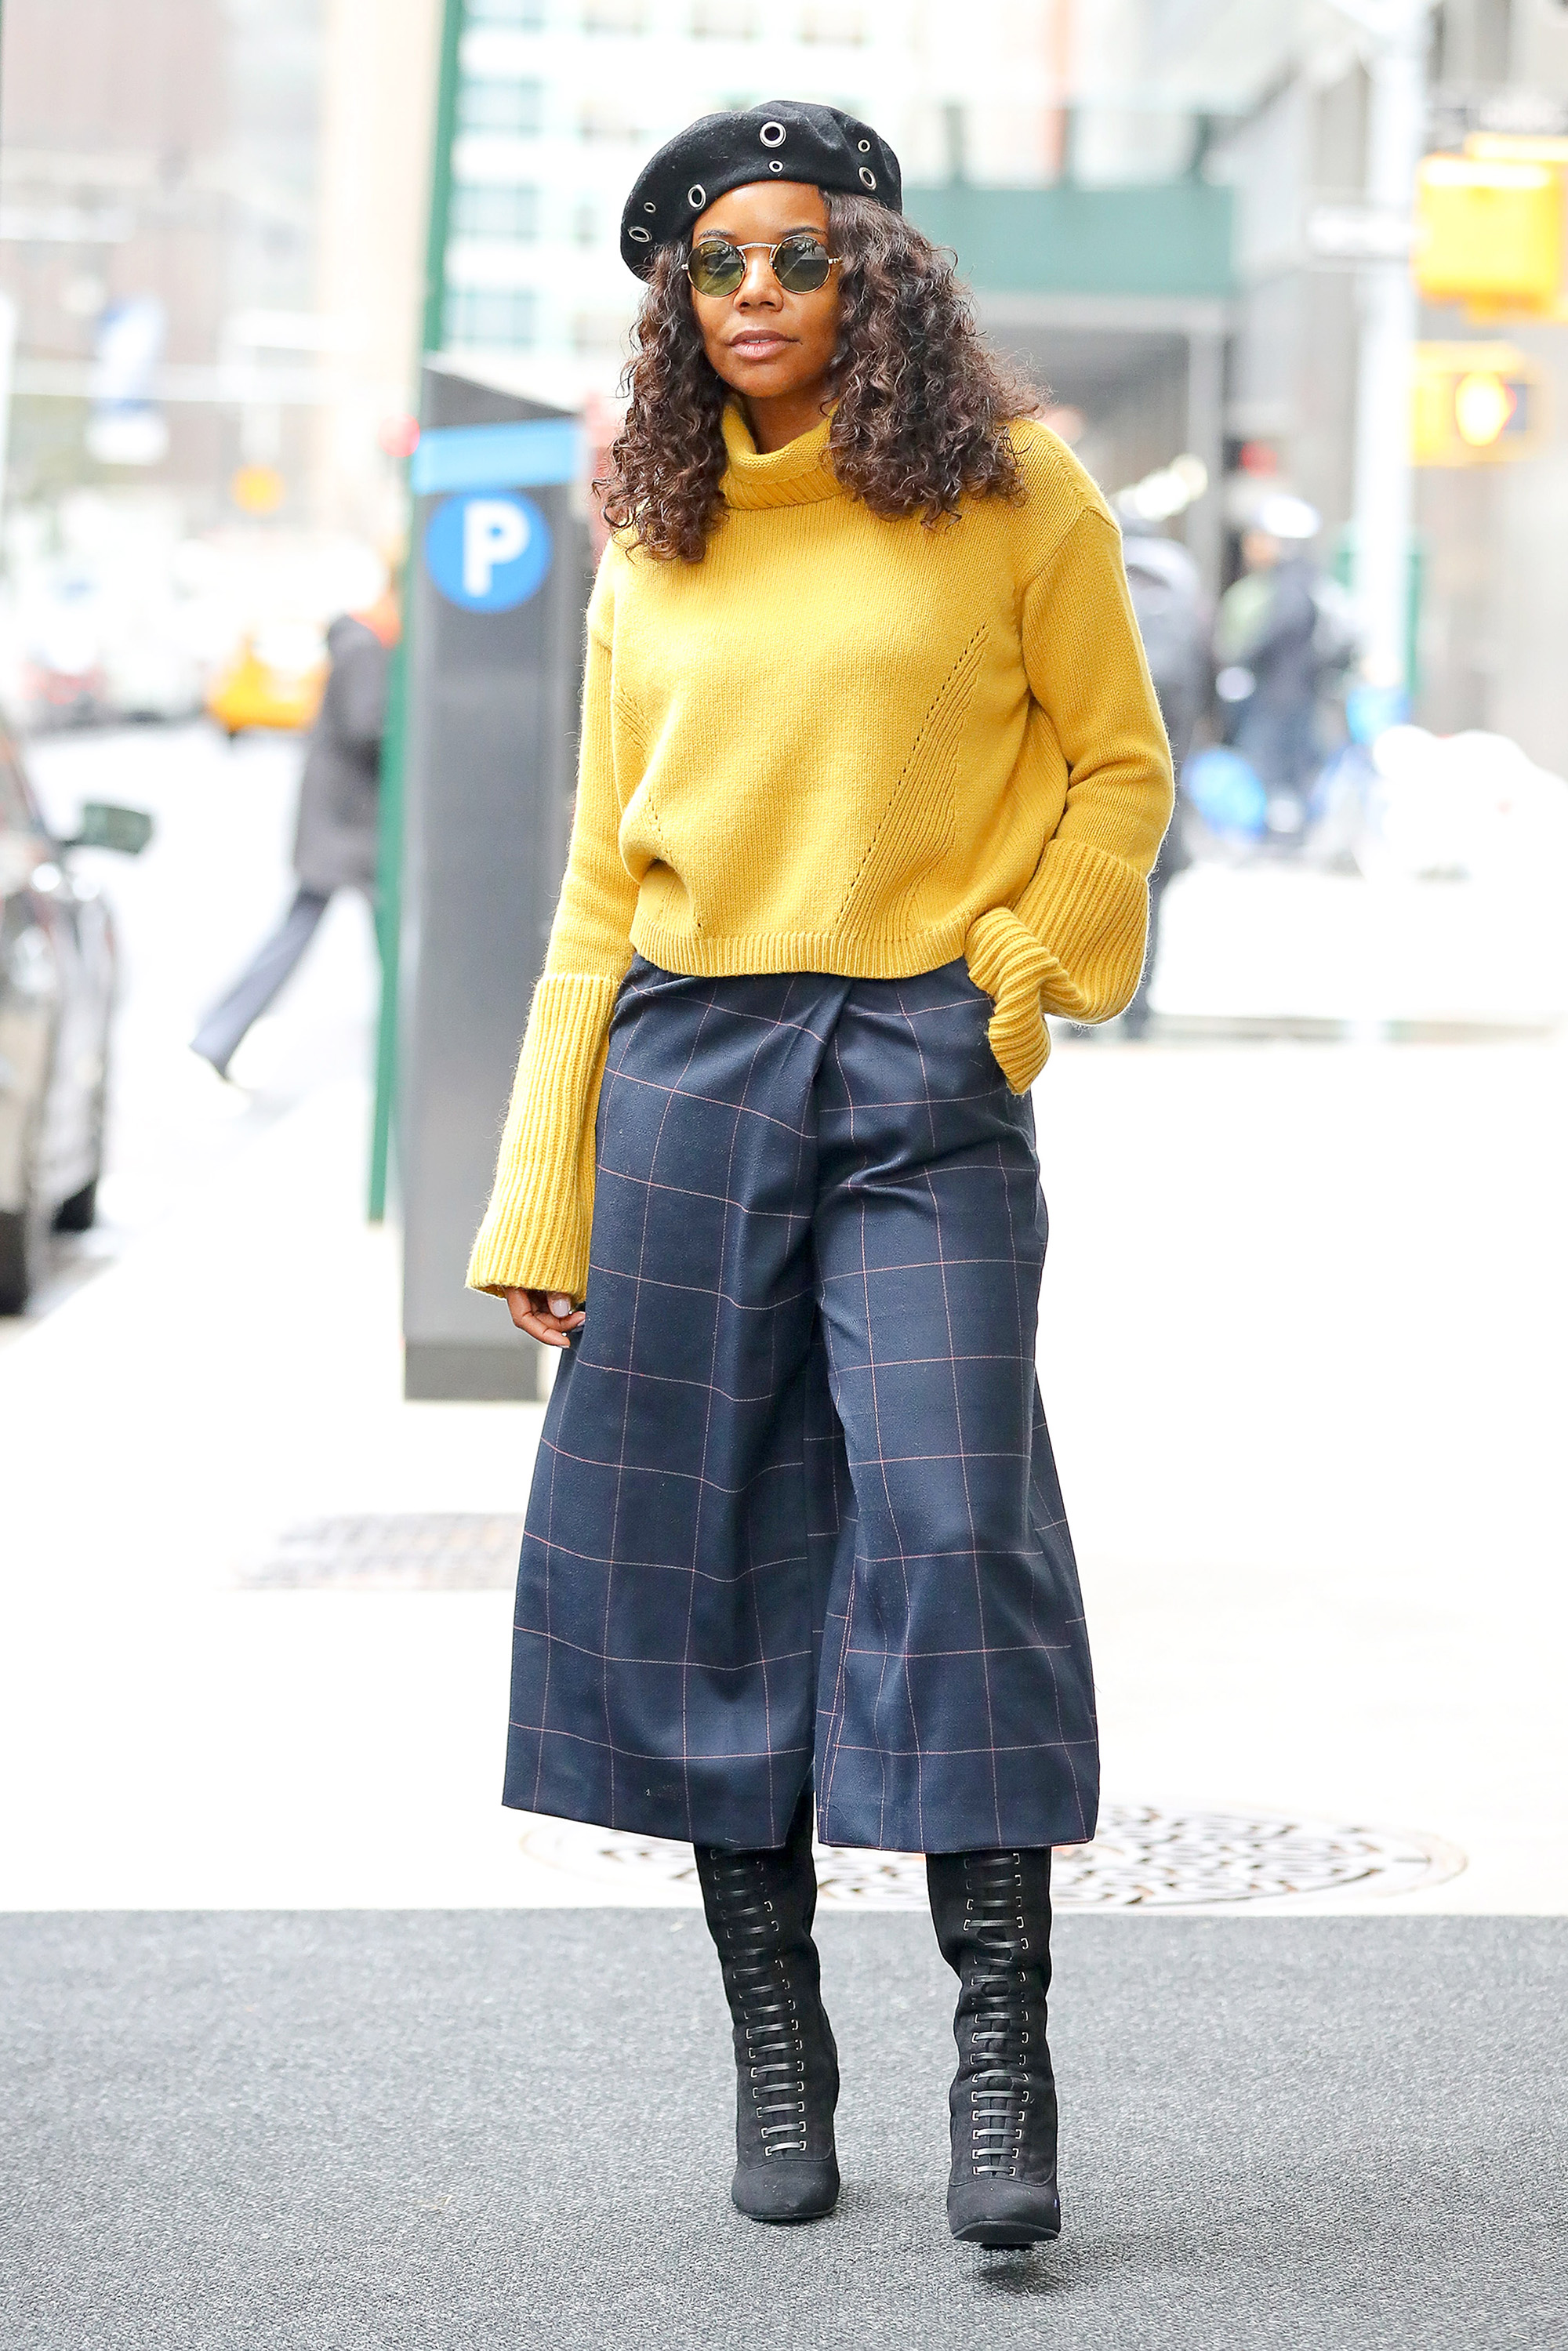 Gabrielle Union wears a Beret as leaving her hotel in New York City, NY.  Pictured: Gabrielle Union Ref: SPL1625380  171117   Picture by: Felipe Ramales / Splash News  Splash News and Pictures Los Angeles:310-821-2666 New York:212-619-2666 London:870-934-2666 photodesk@splashnews.com